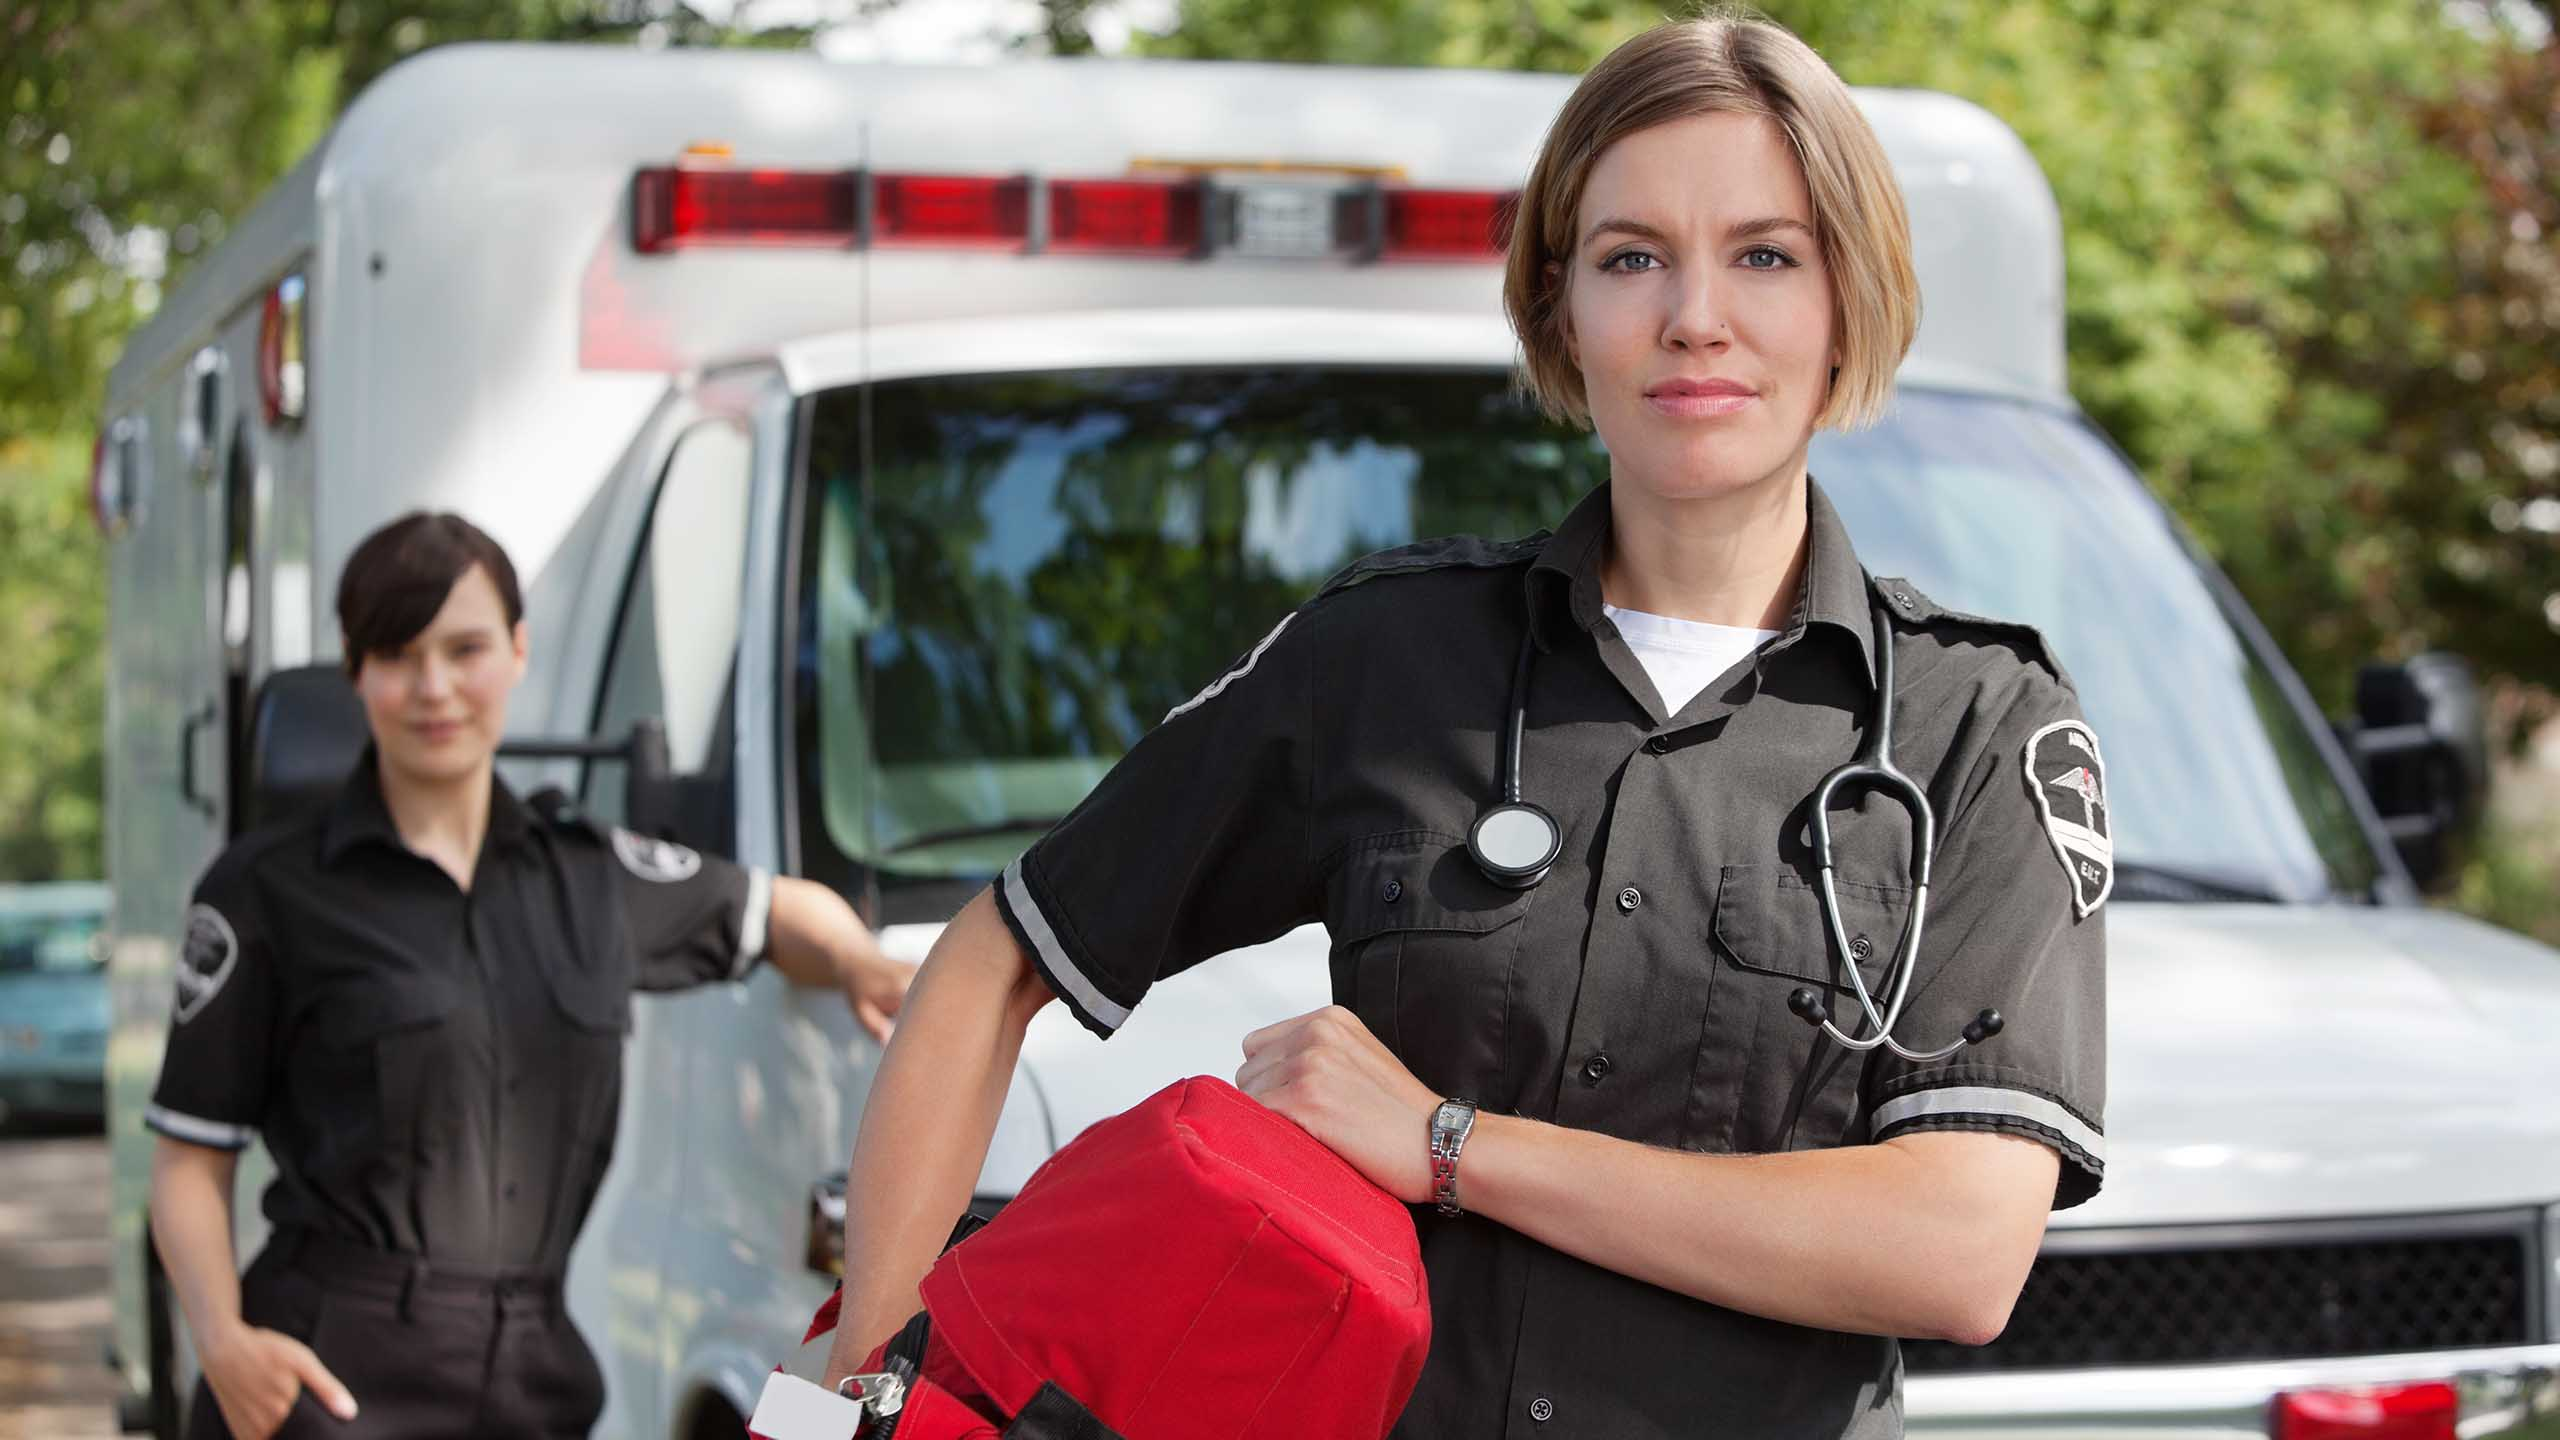 Read: Monitoring the Health of First Responders with Wearable Sensors